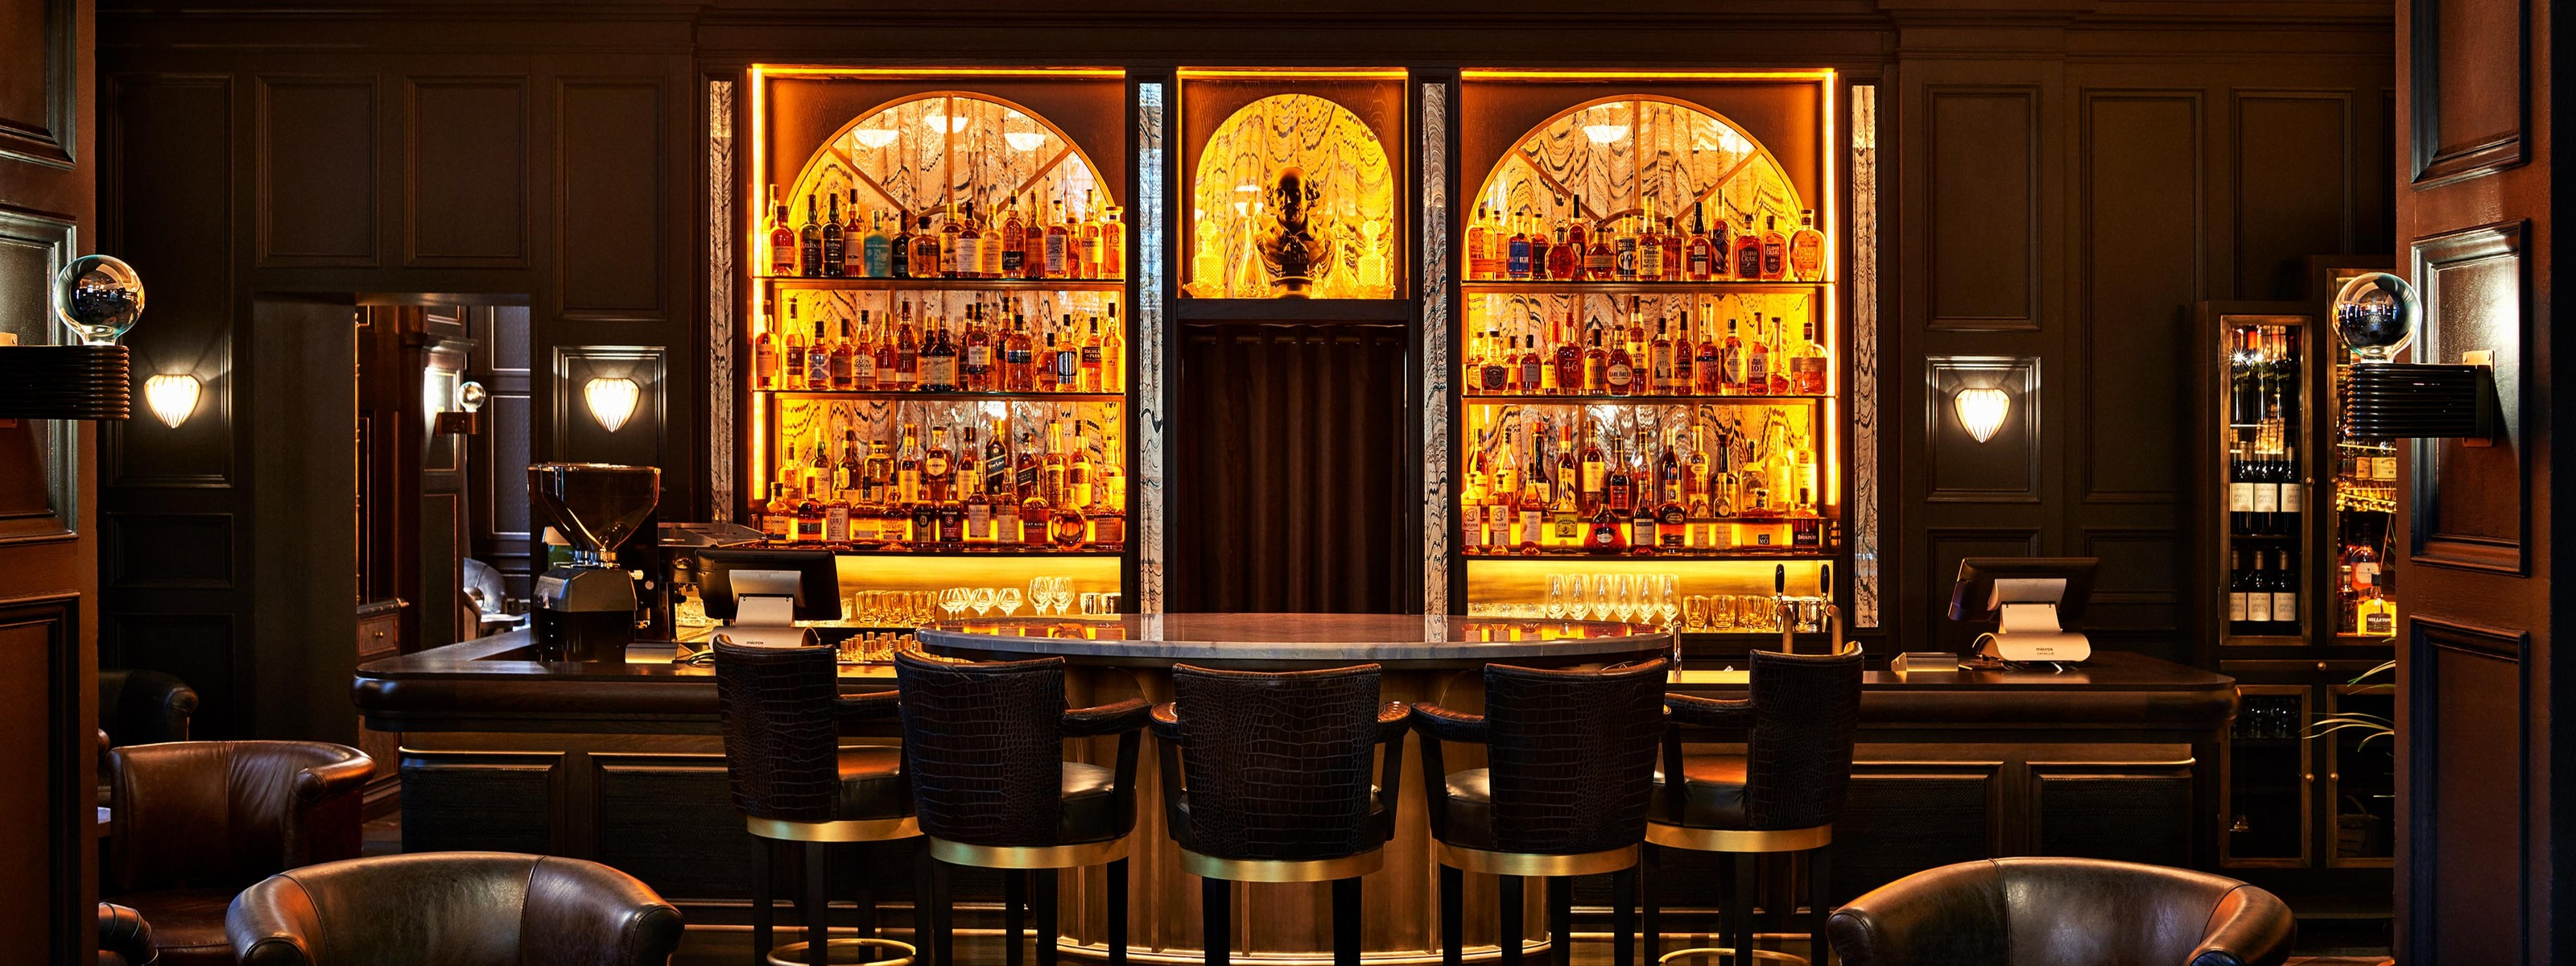 The First Timer's Guide To Drinking In London - London - The Infatuation